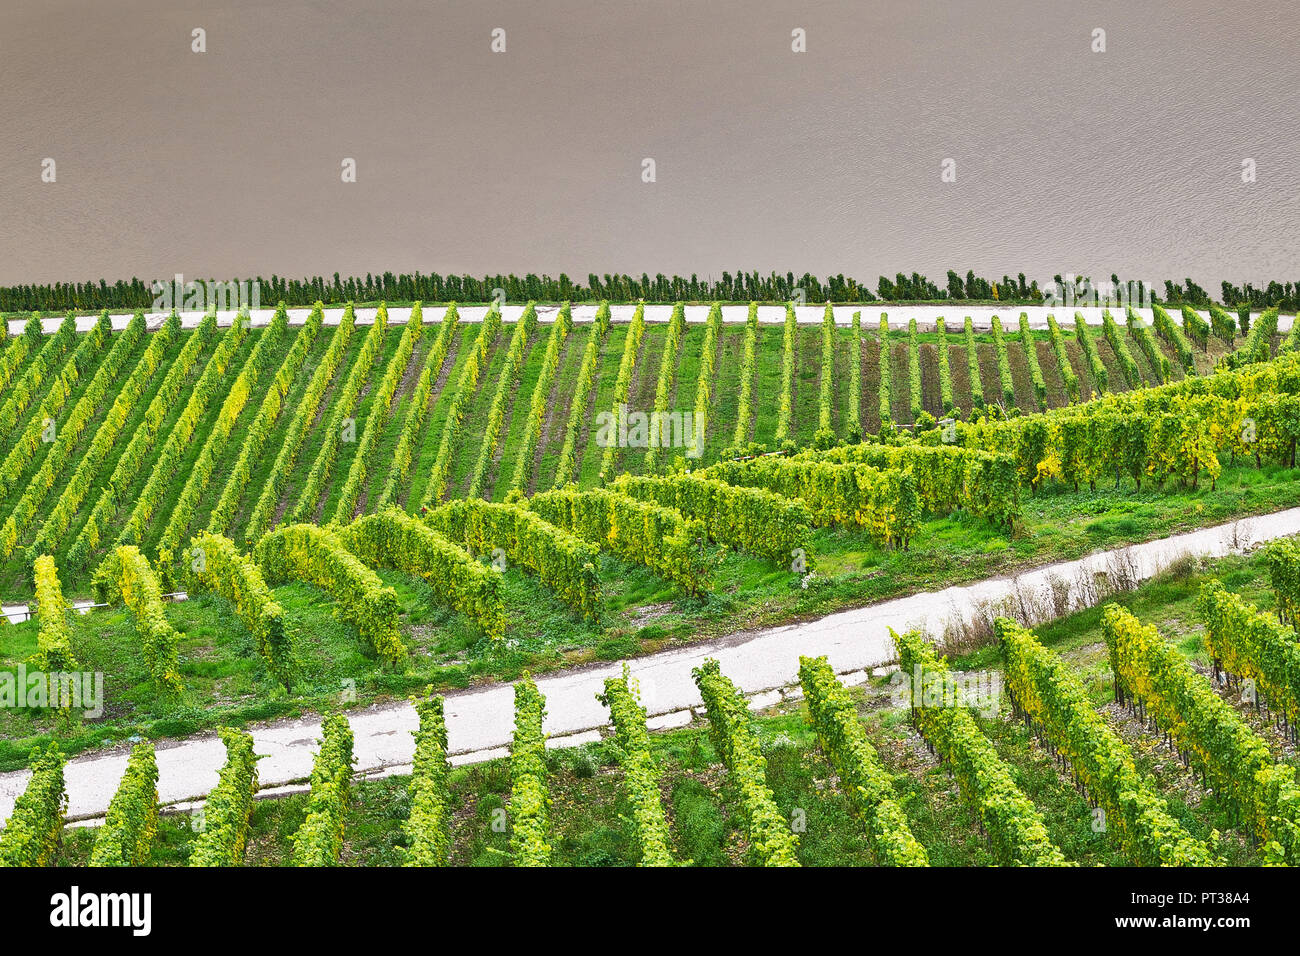 Vineyard at the Moselle overlooking the river. - Stock Image